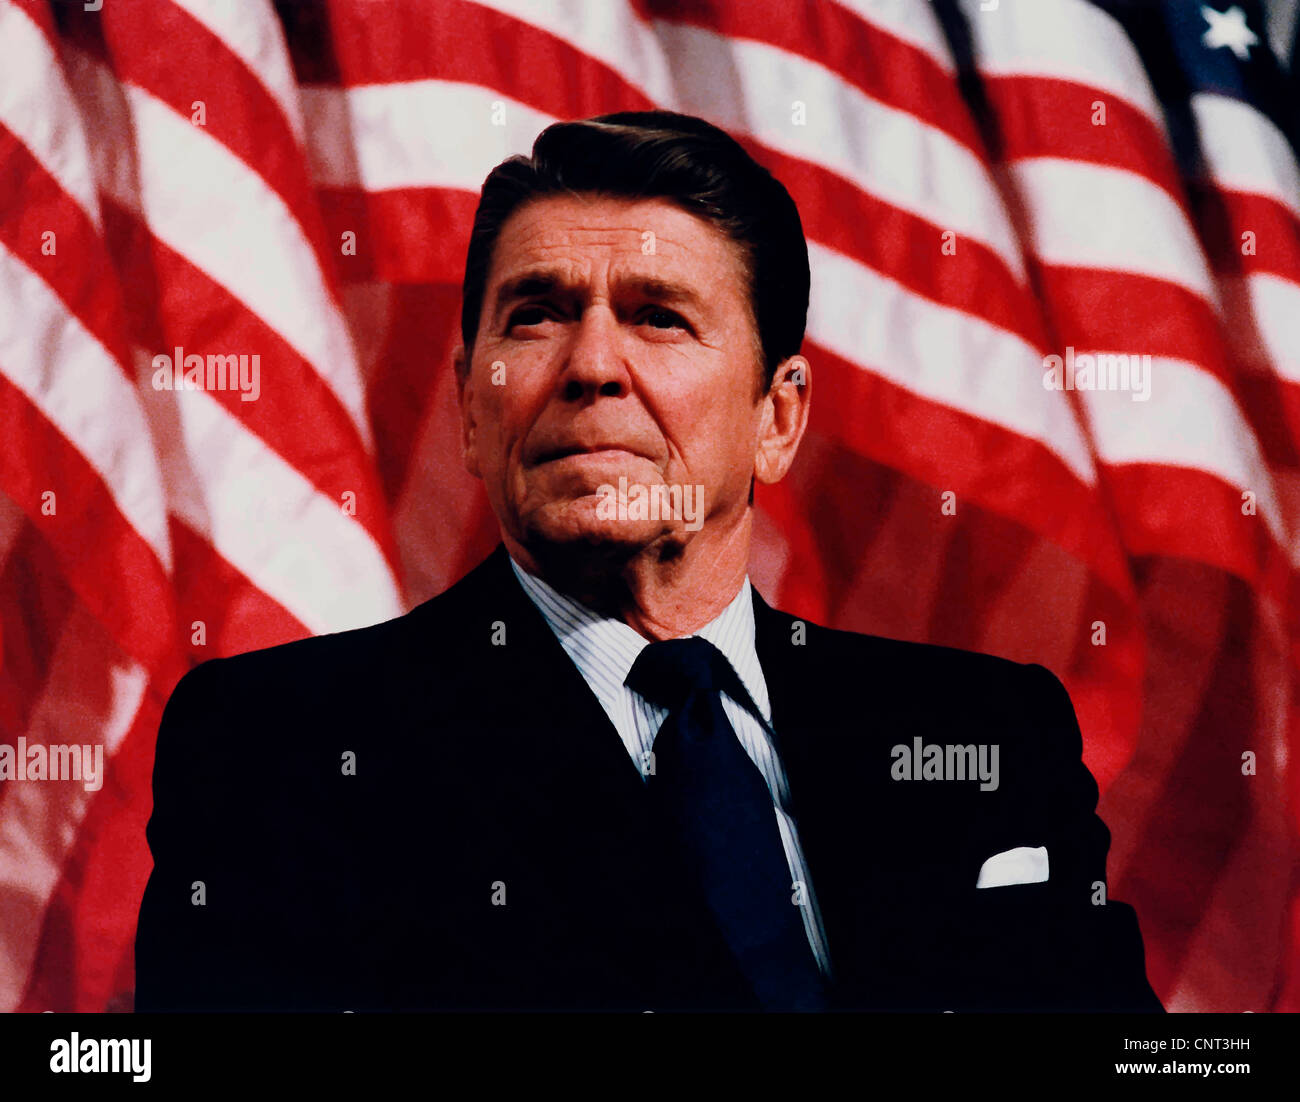 Digitally restored vector photo of President Ronald Reagan speaking in front of American Flags. - Stock Image